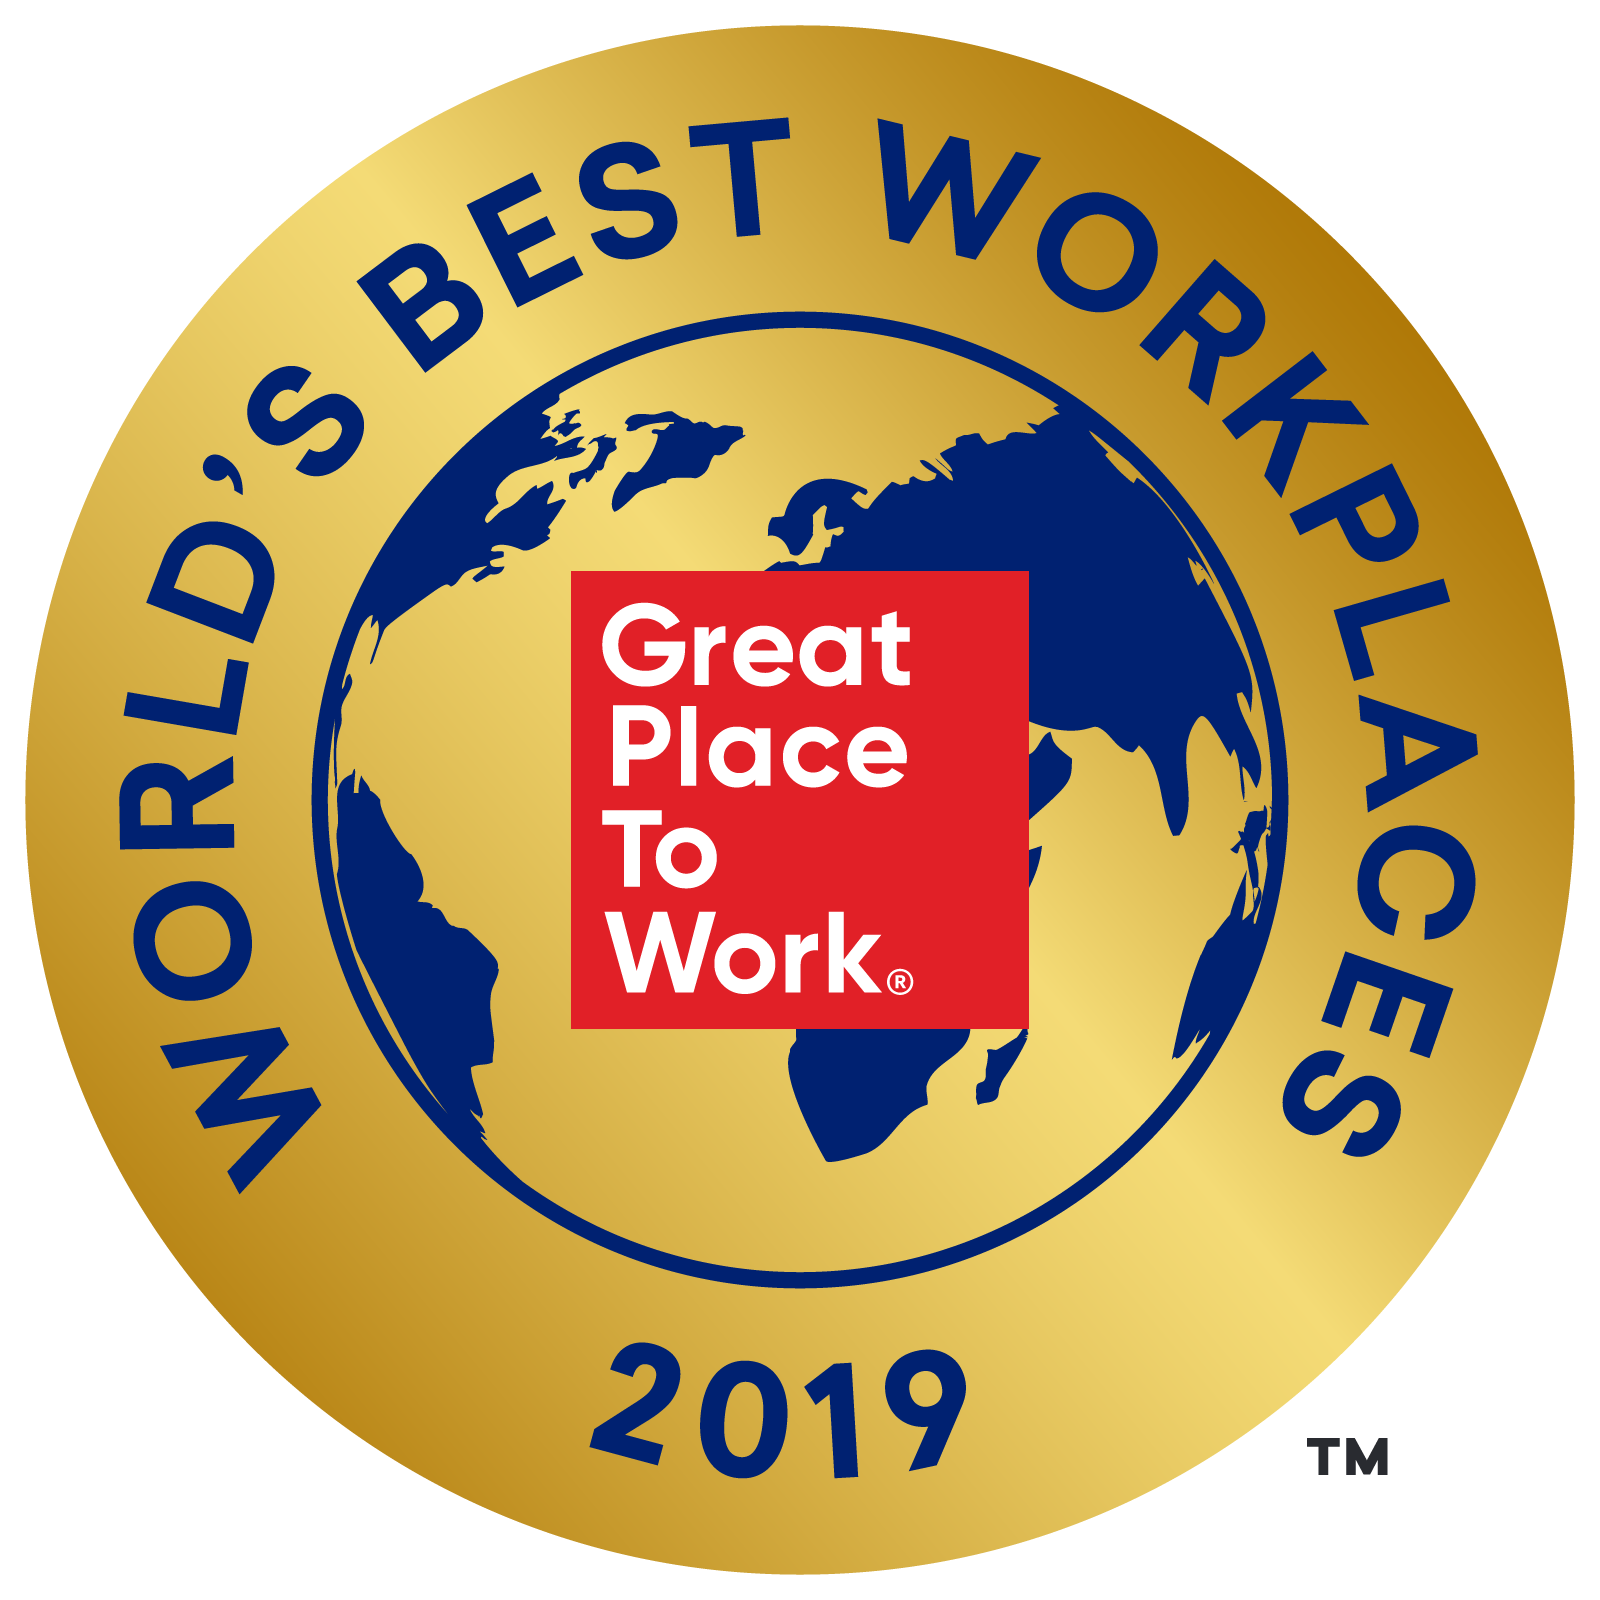 World's best workplaces 2019